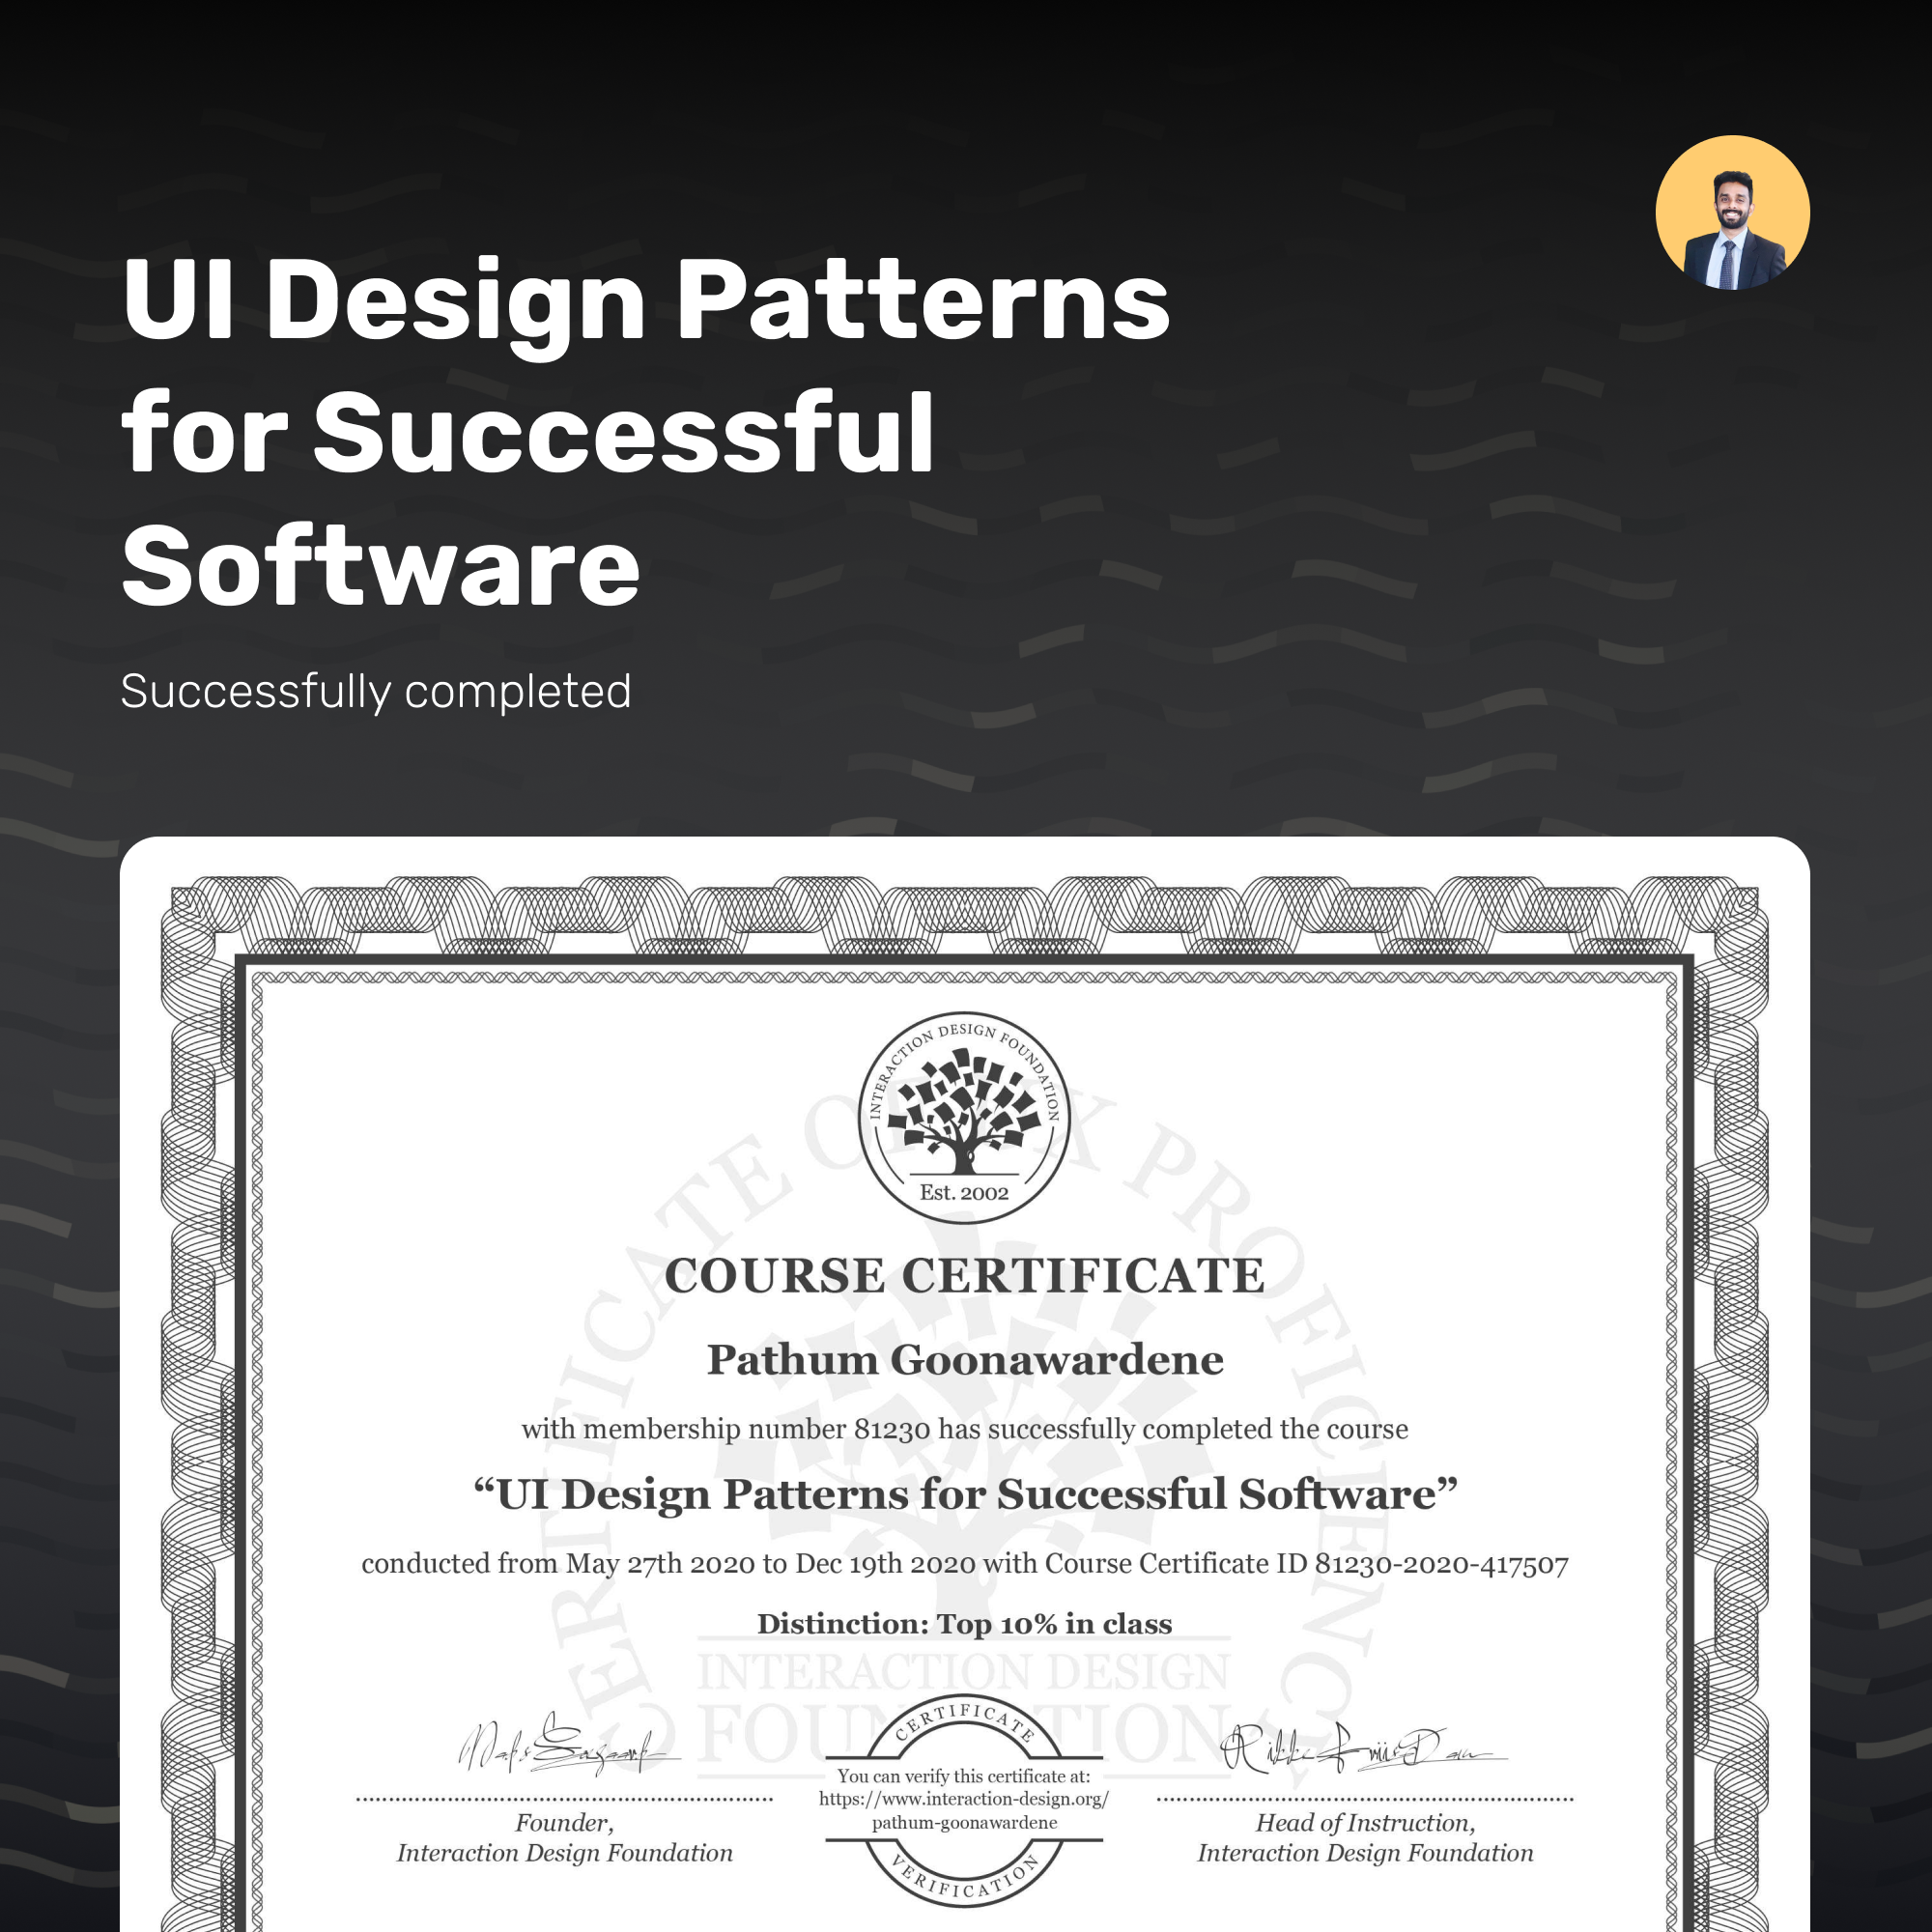 UI Design Patterns for Successful Software